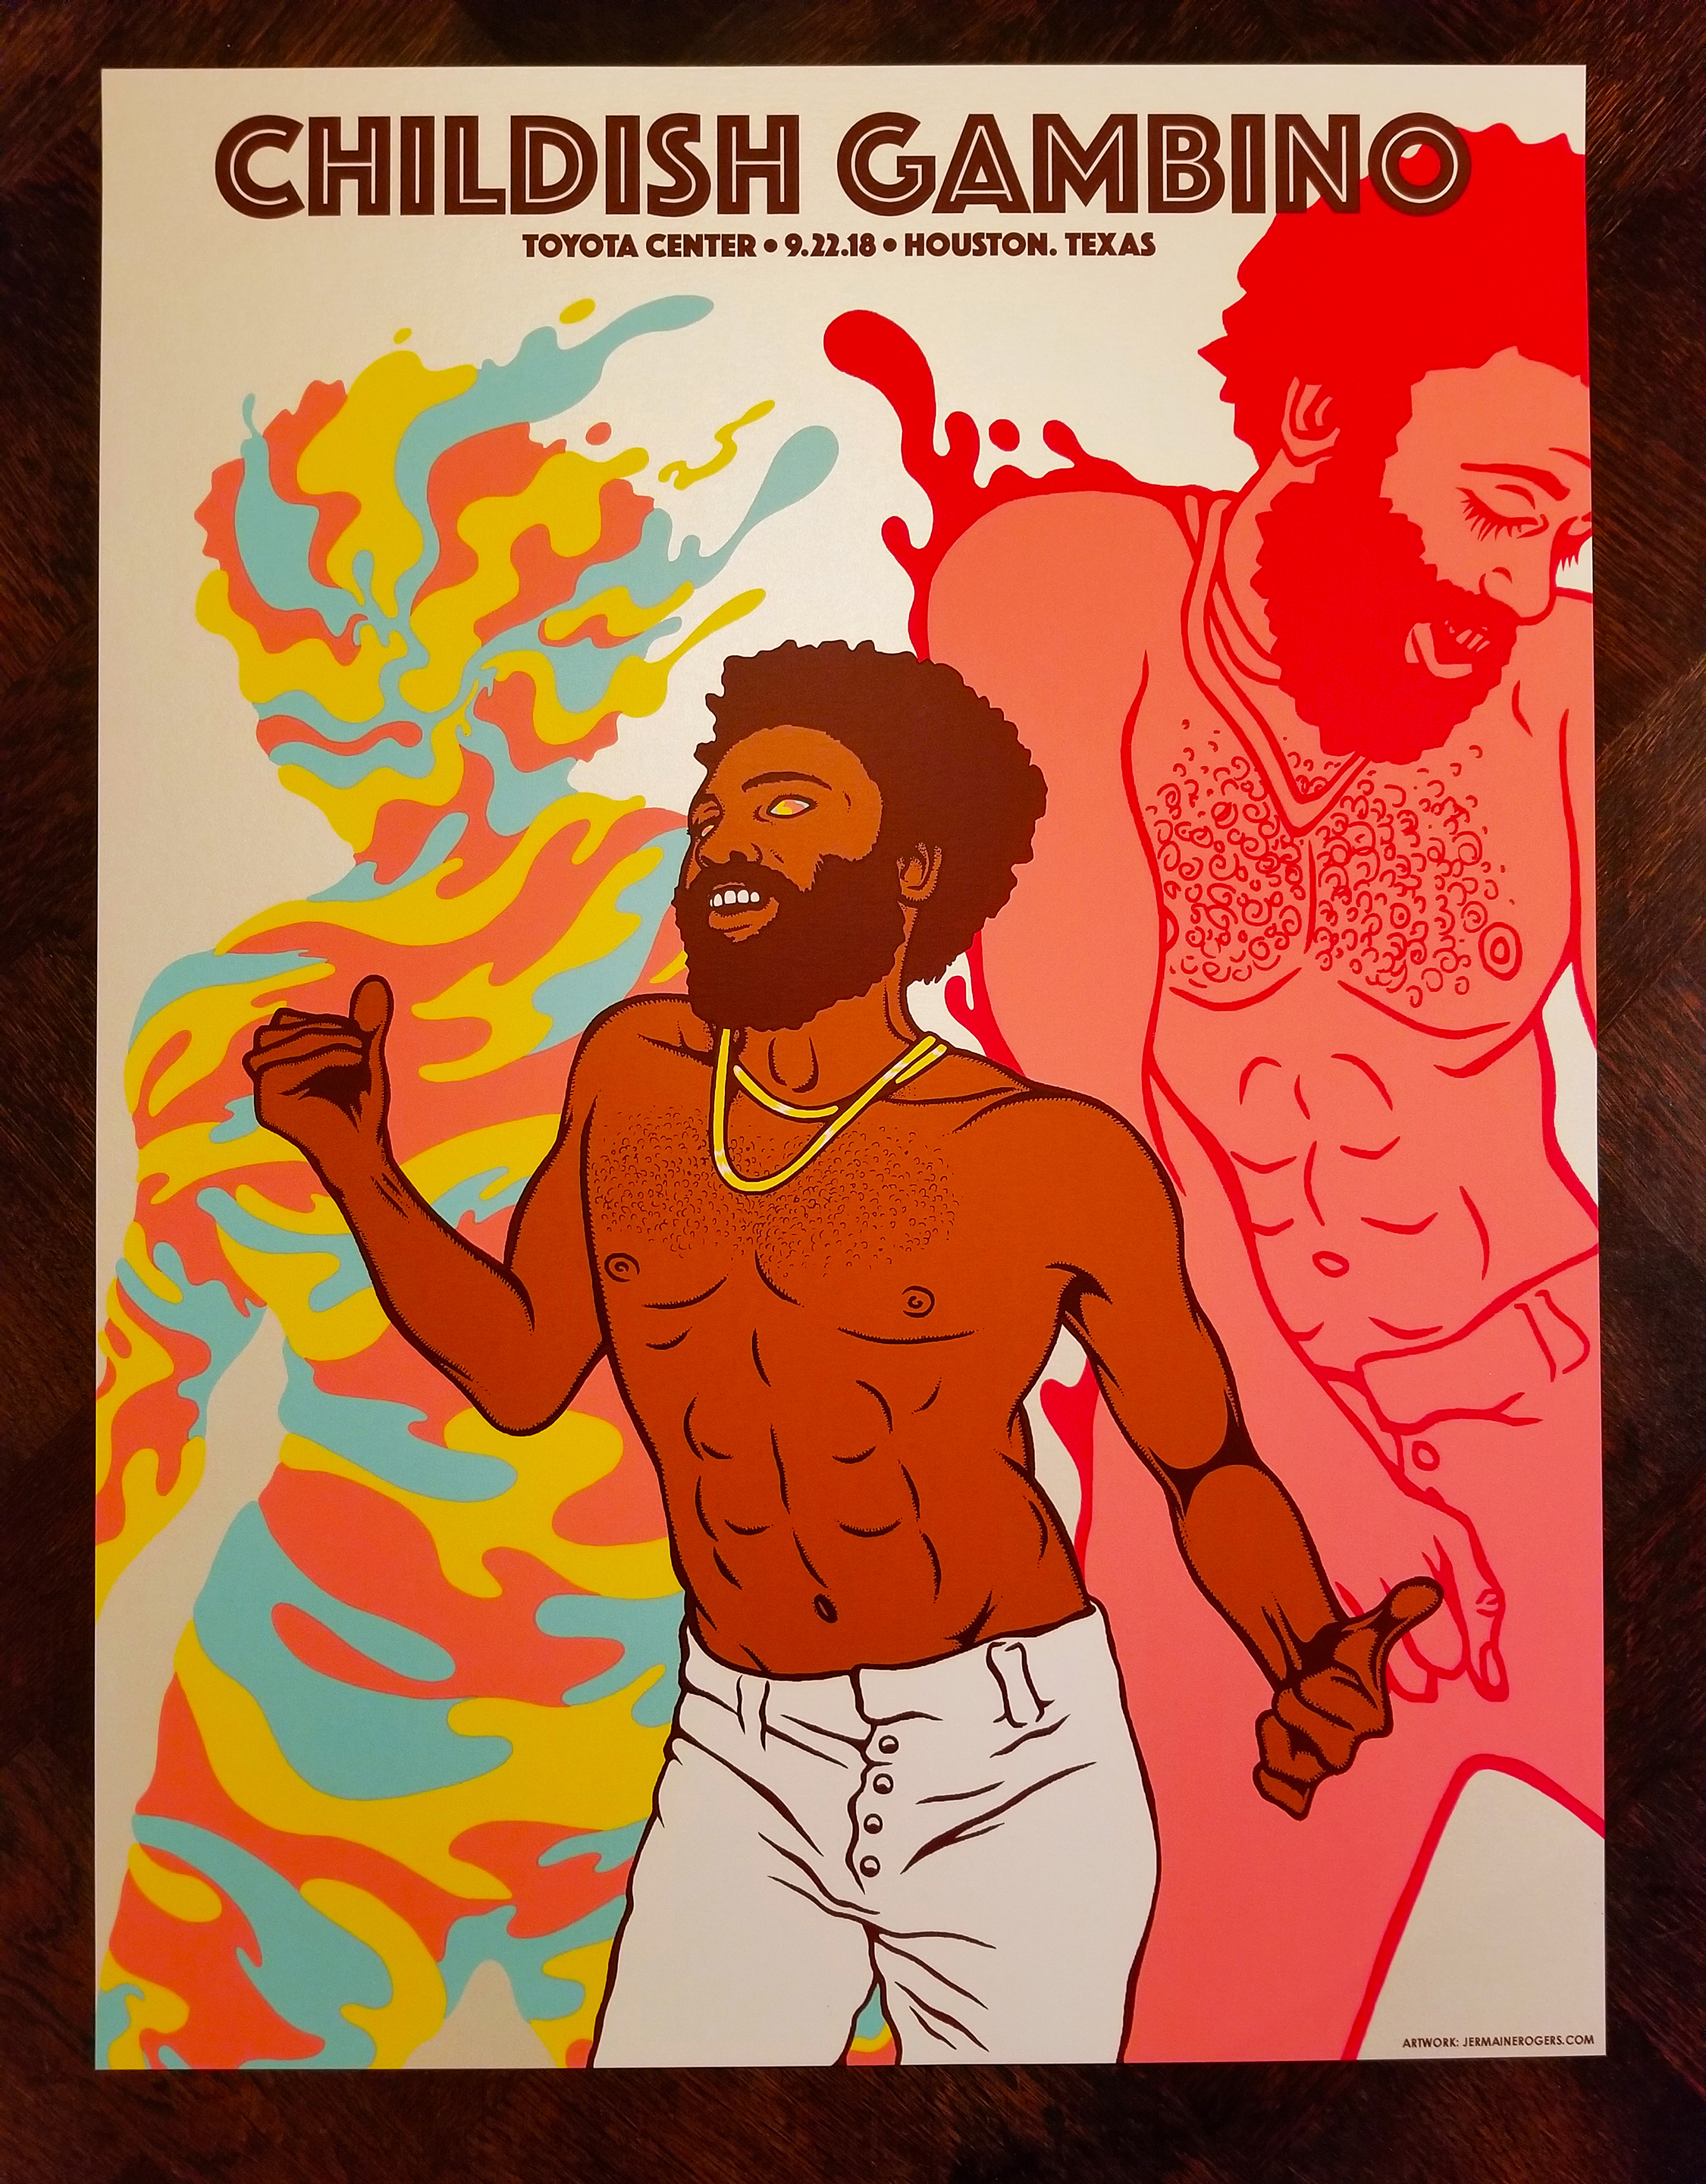 NEW - Childish Gambino (Houston 2018) Artist Edition (STUDIO COPIES)